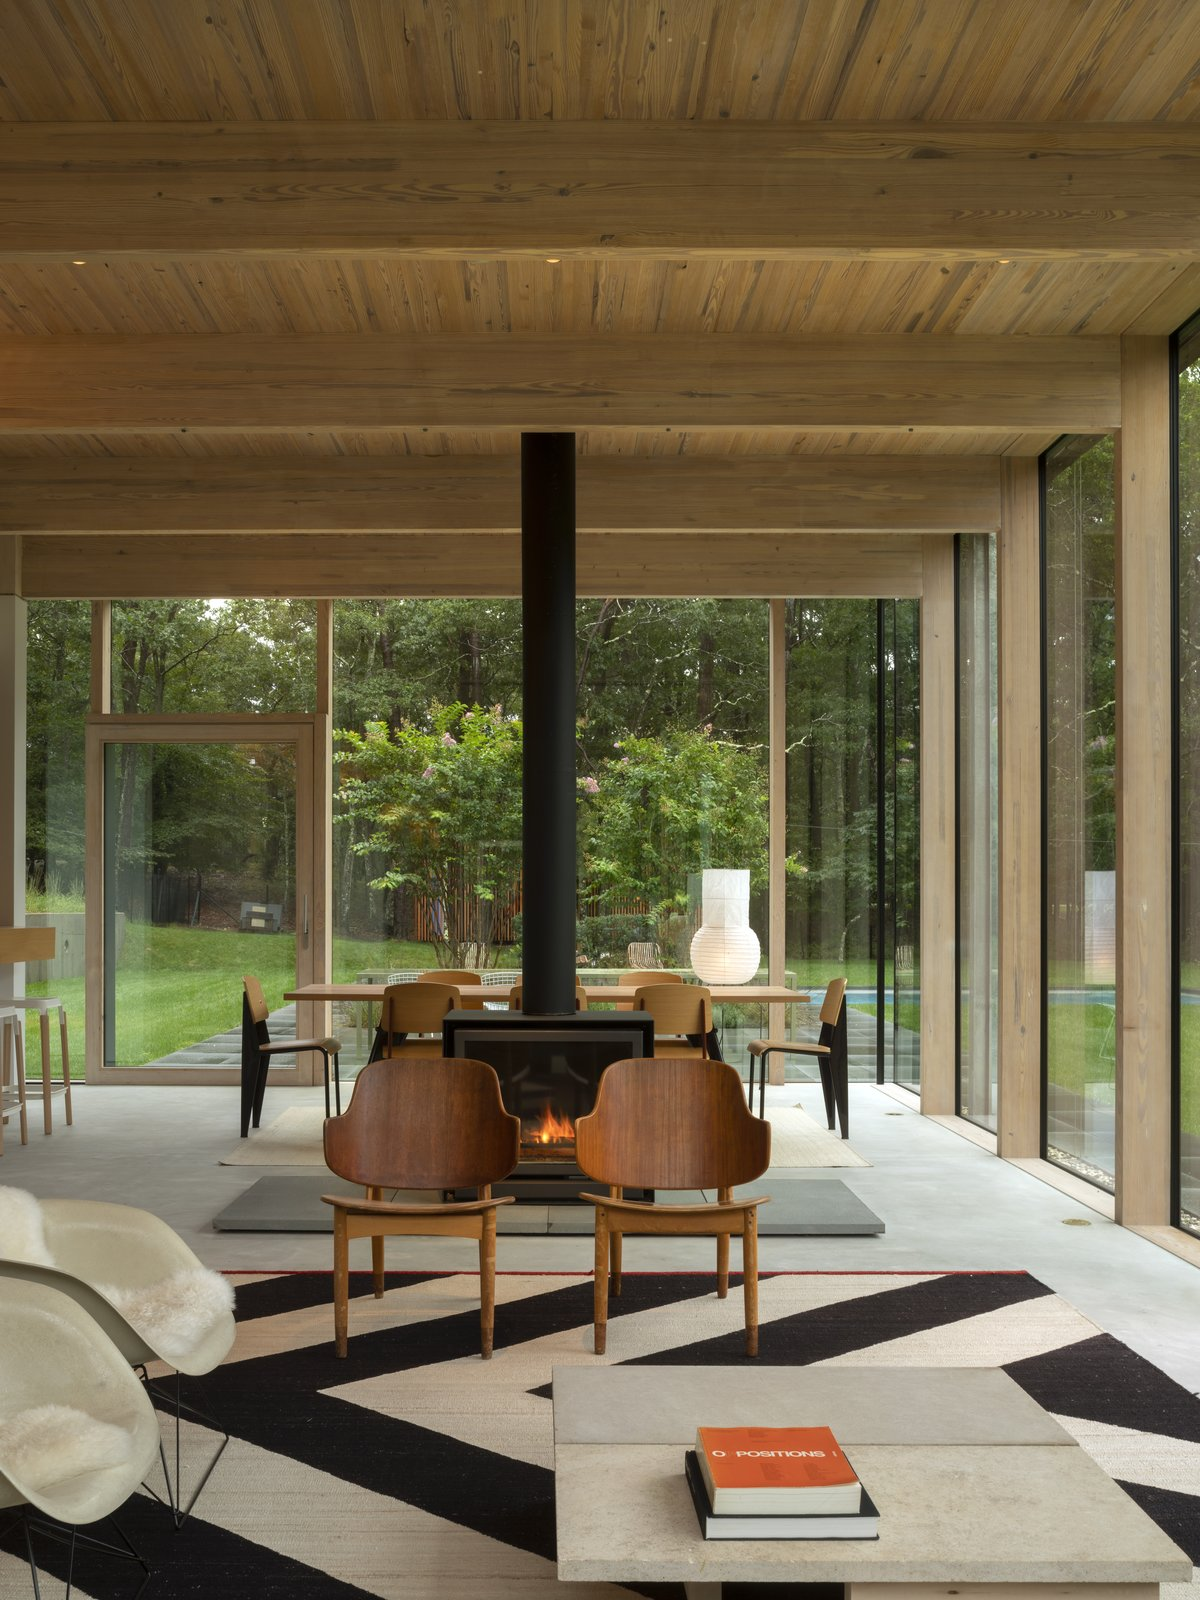 Living, Two-Sided, Chair, and Coffee Tables A slender, black double-sided fireplace distinguishes the living room from the dining area.  Living Two-Sided Photos from An Energy-Efficient Glass House in East Hampton Shifts With the Seasons